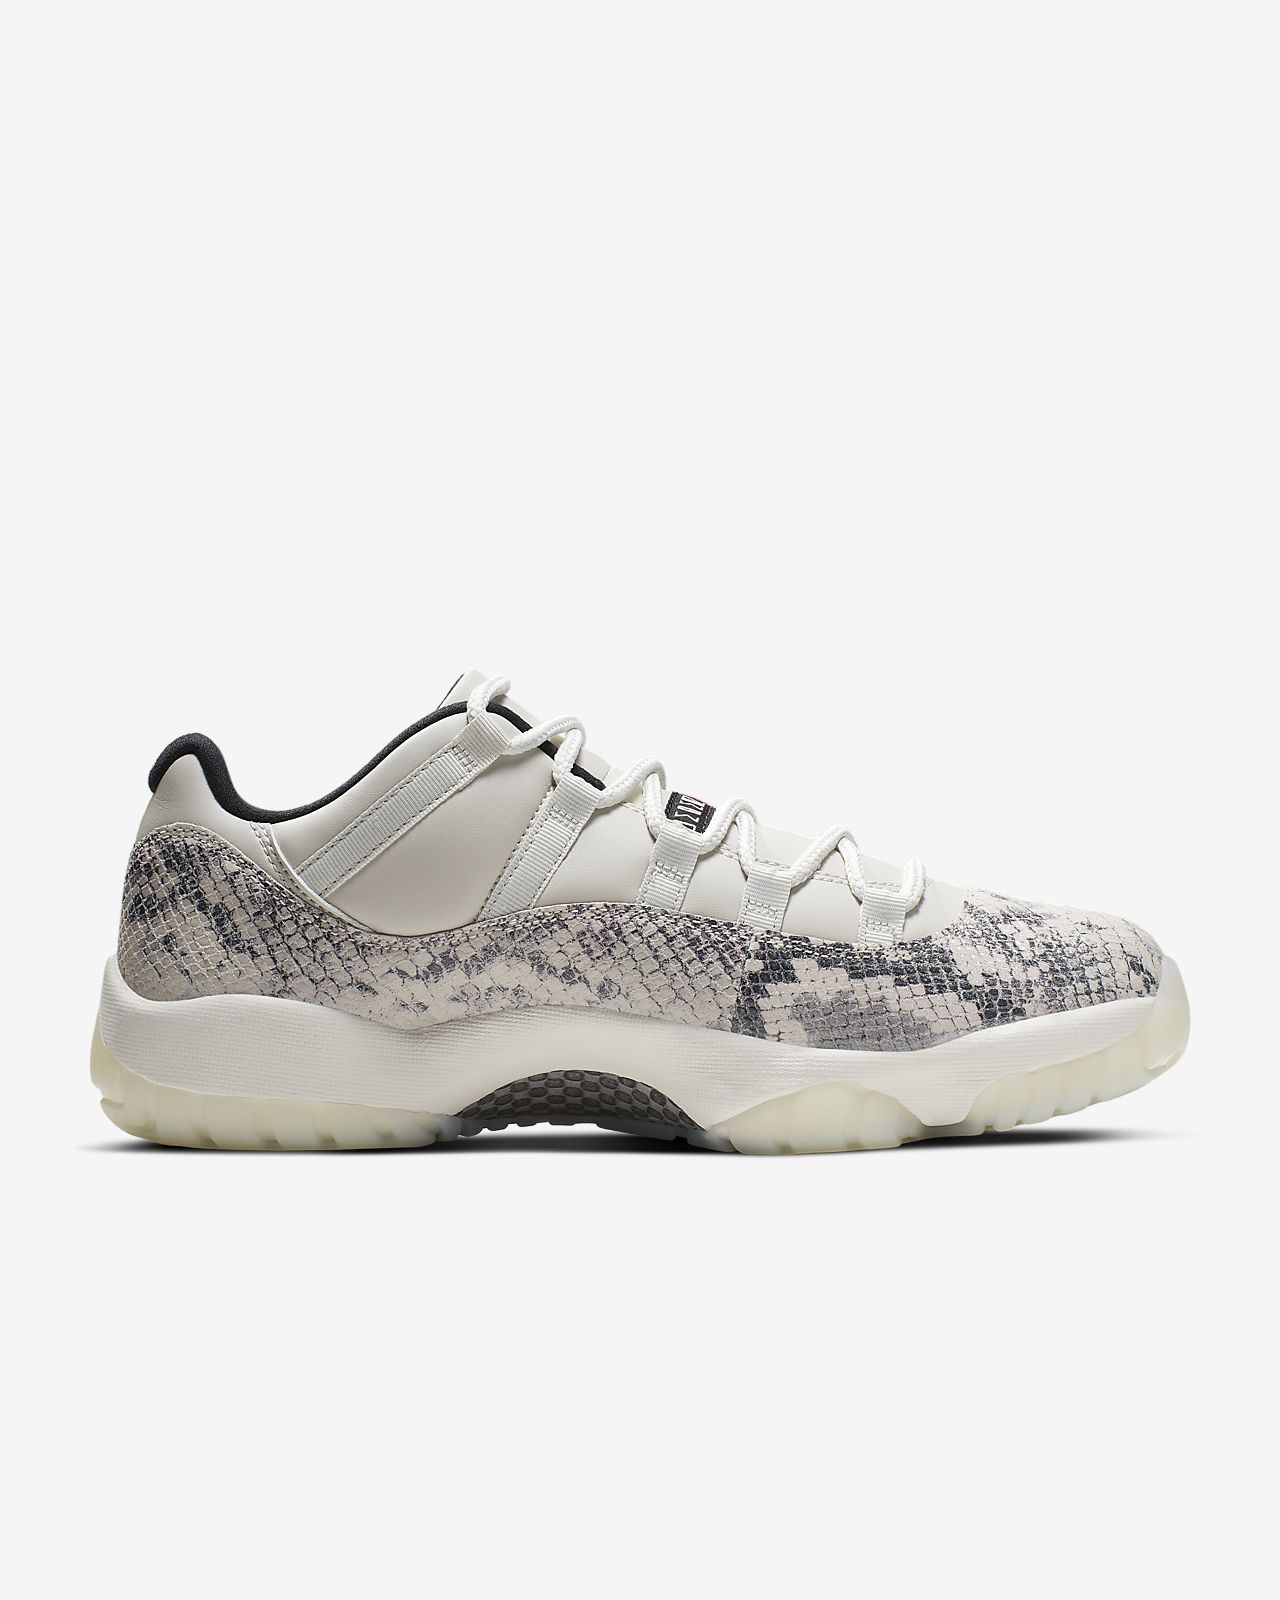 707e3aadaae Air Jordan 11 Retro Low LE Men's Shoe. Nike.com